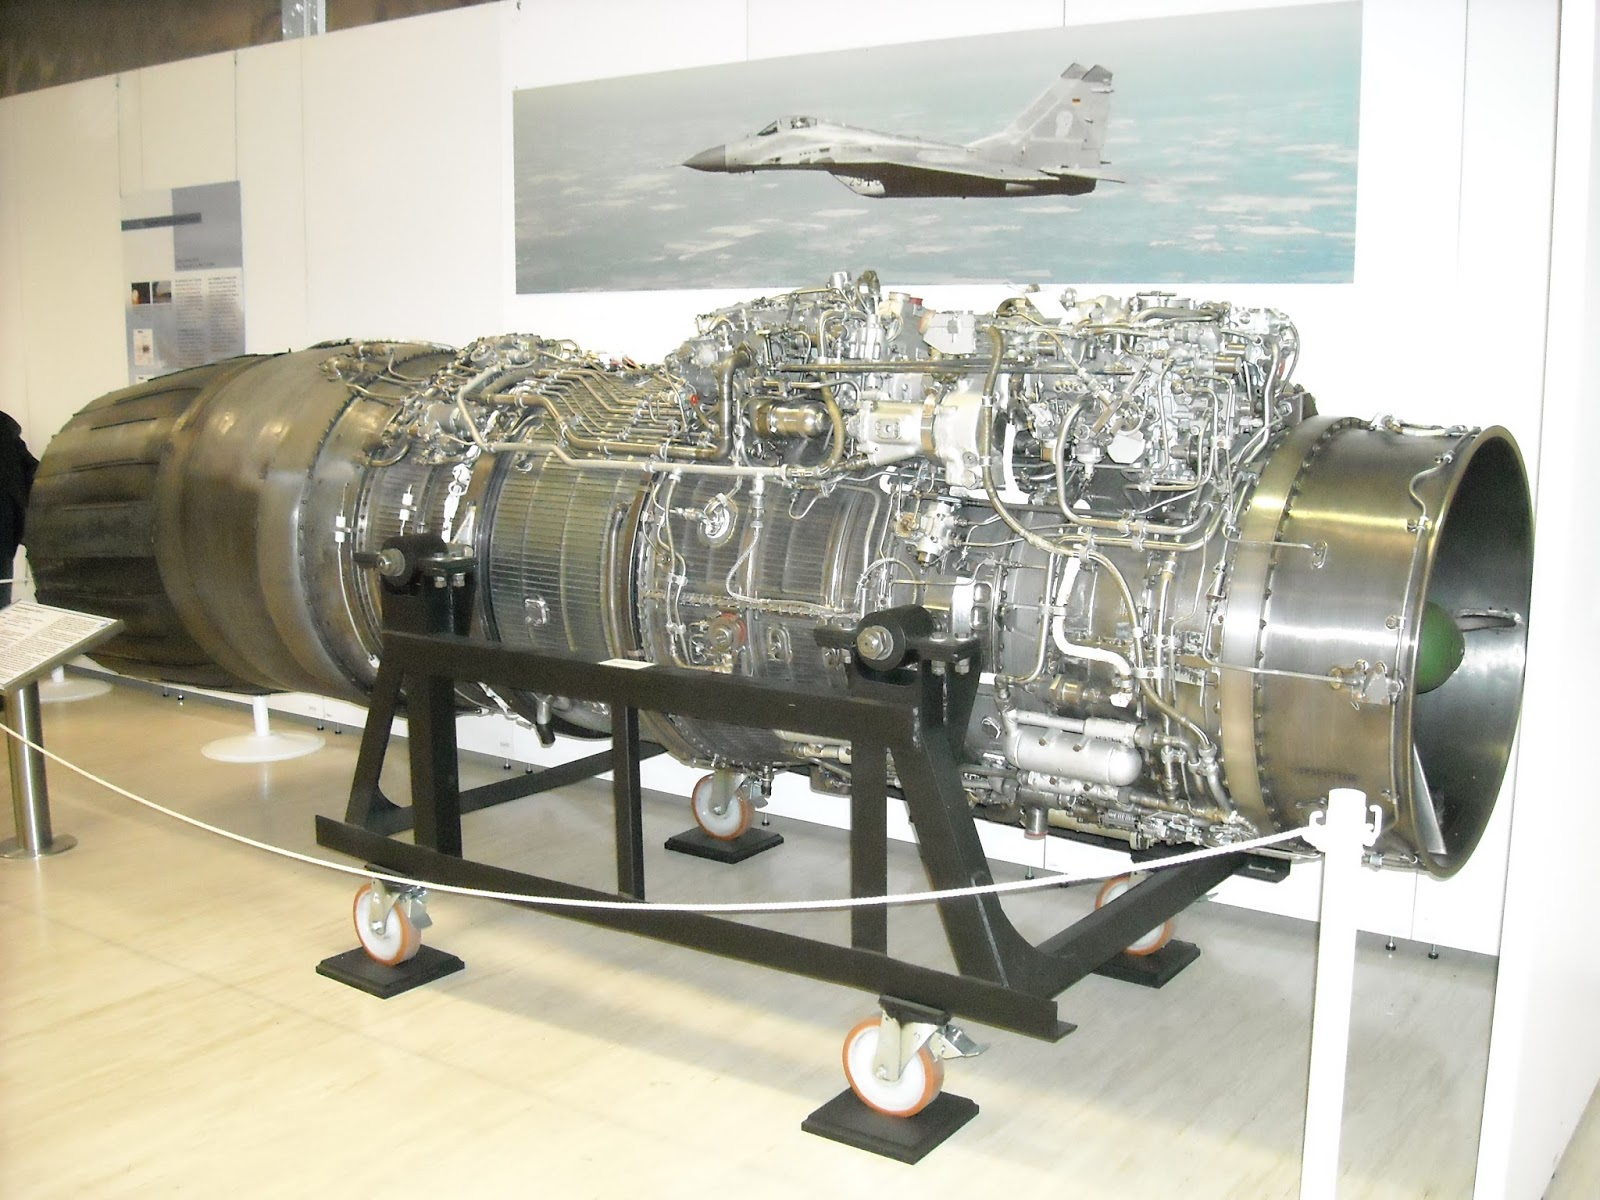 Klimov_RD-33_turbofan_engine